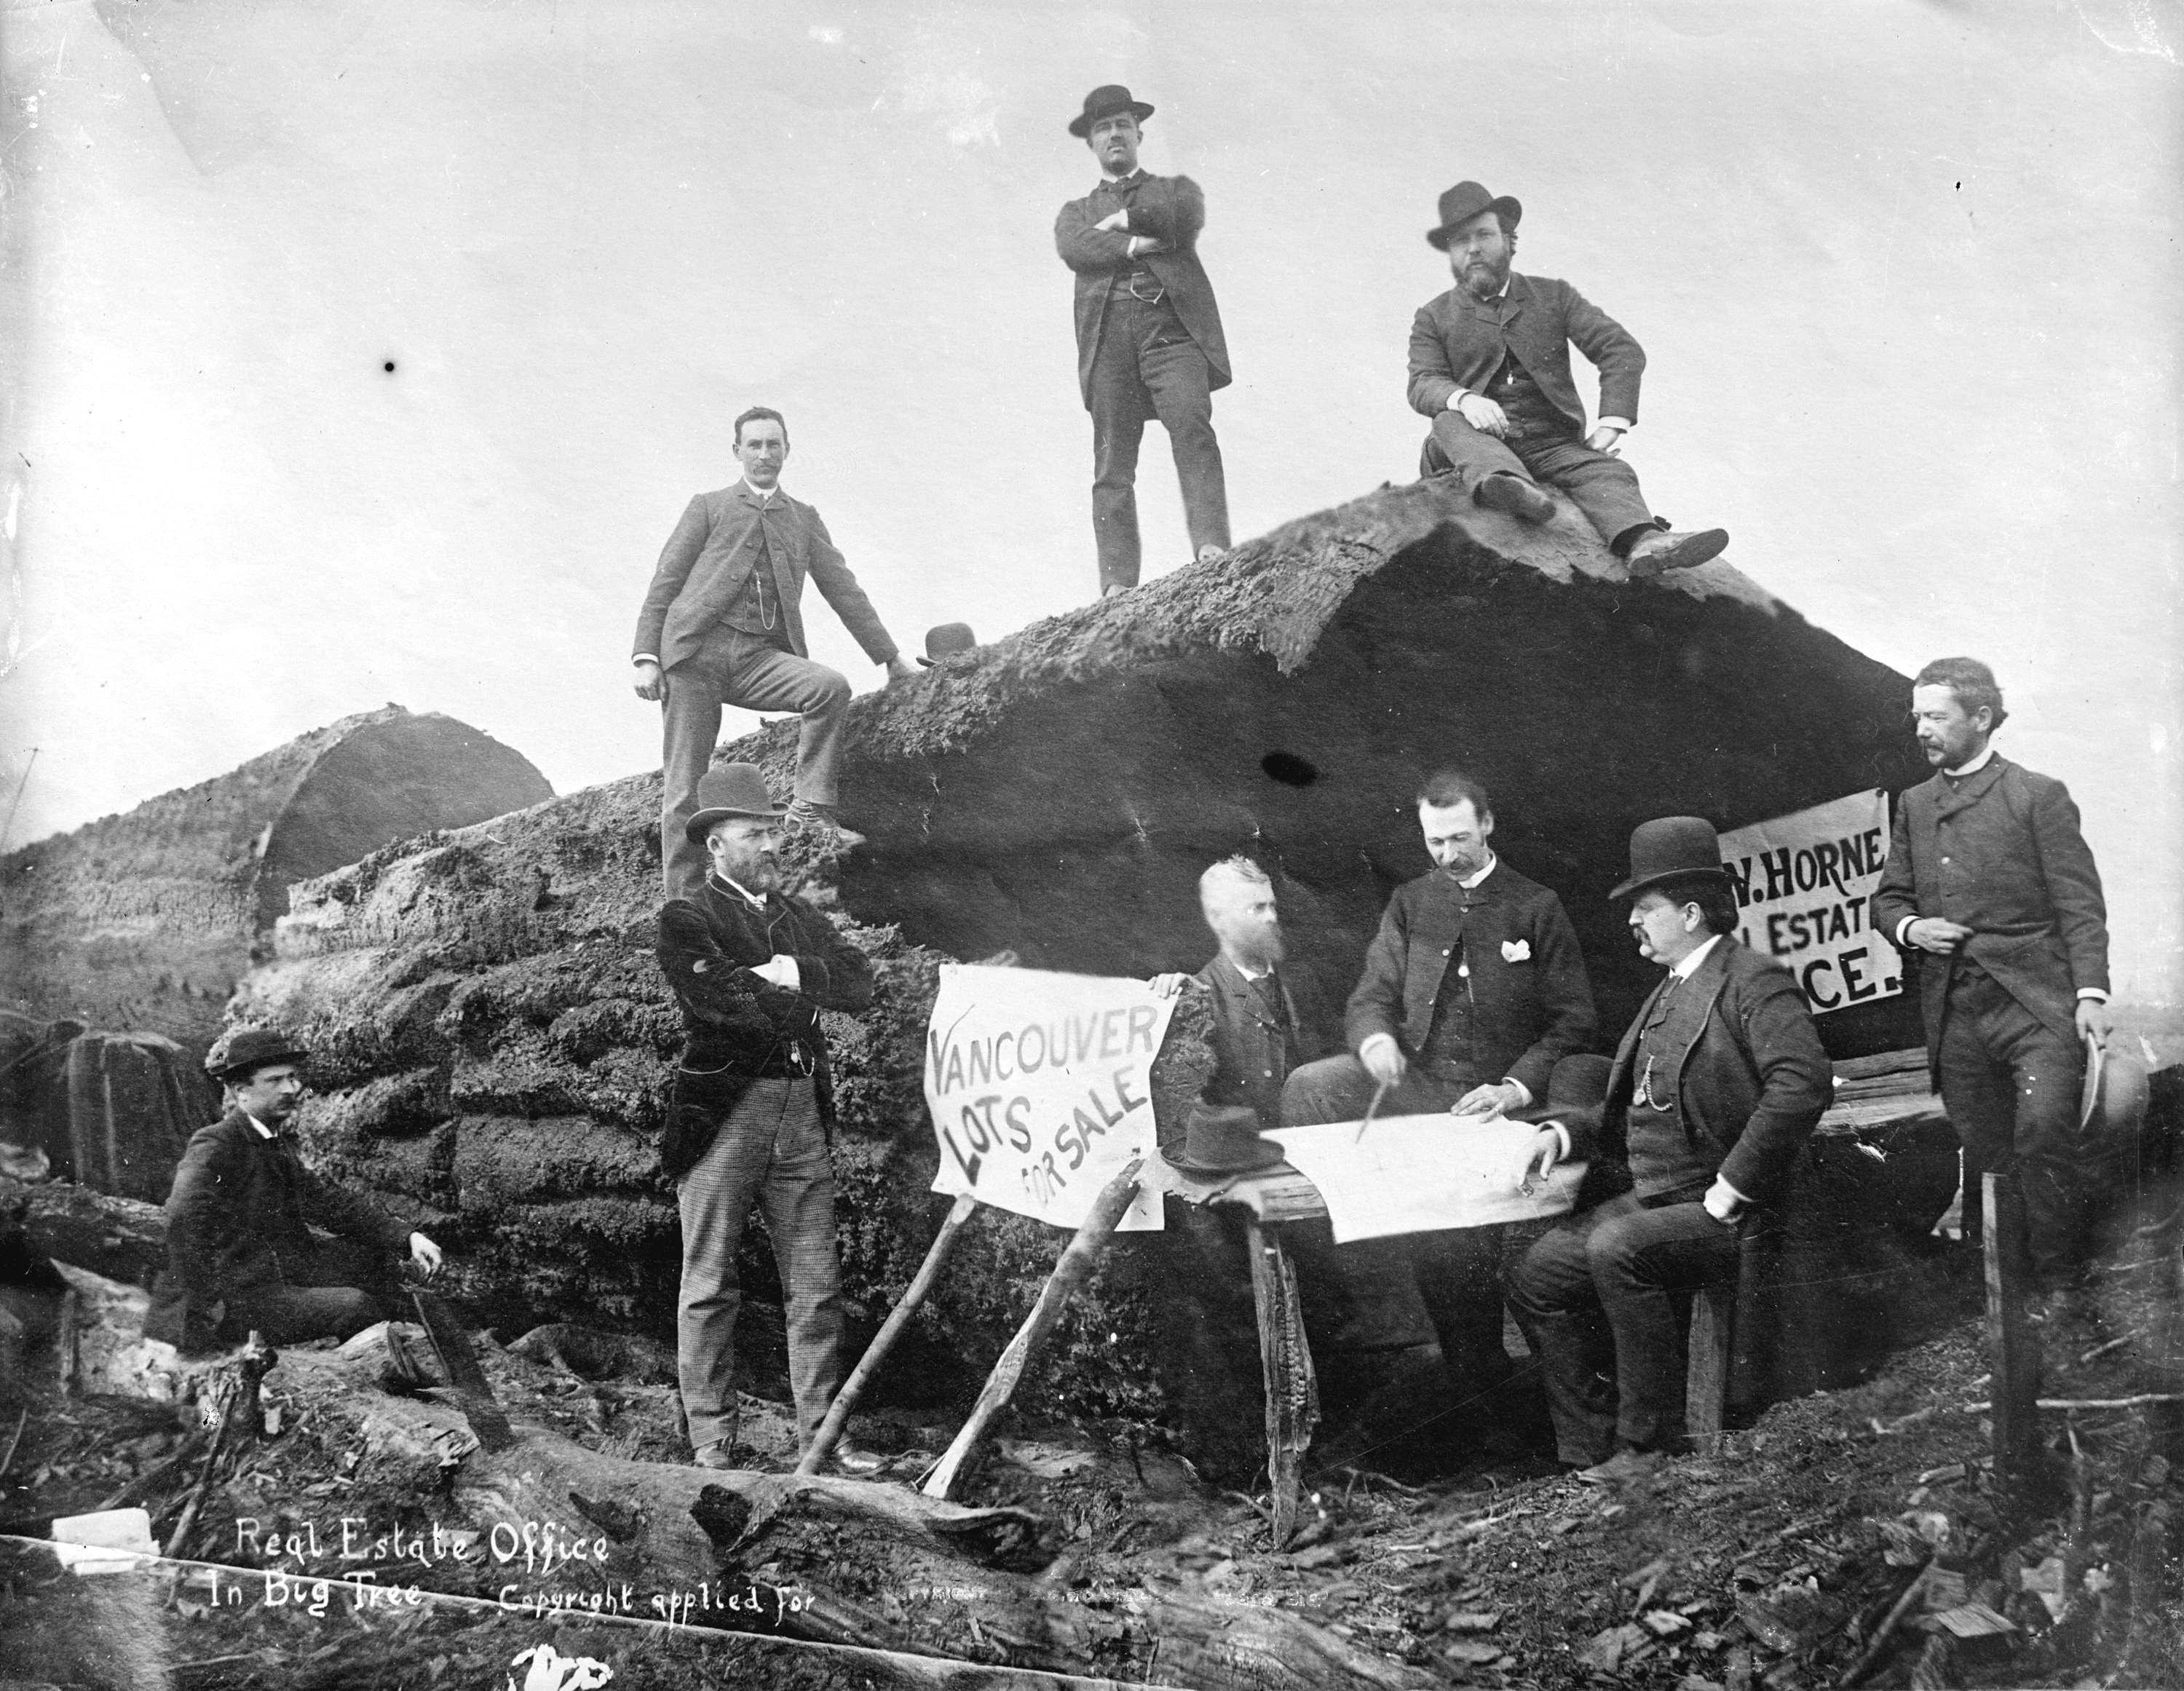 A real estate office set up in a big tree for a promotional event in Vancouver in 1886 (Vancouver Archives)